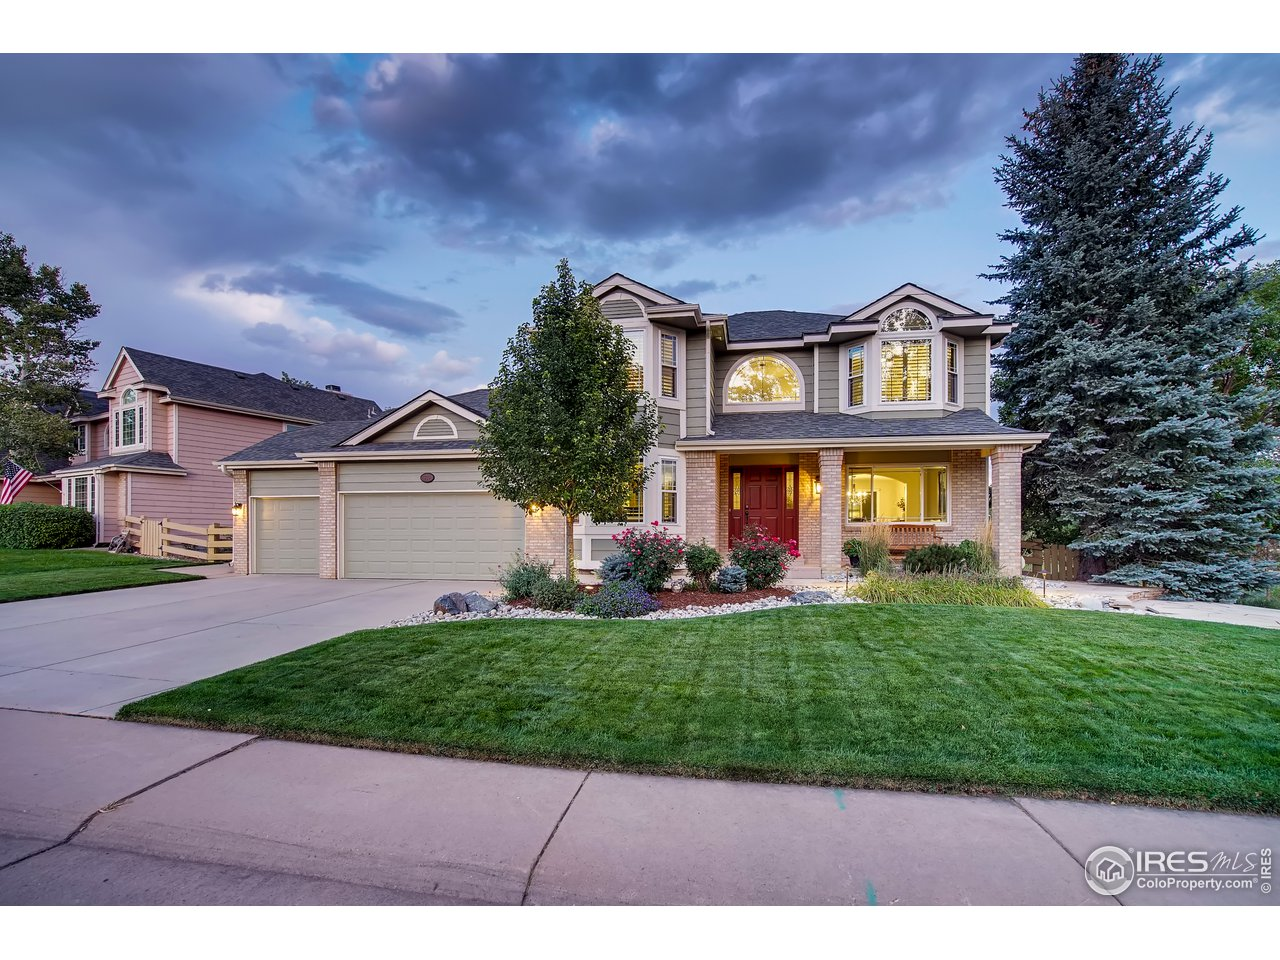 930 S Pitkin Ave, Superior CO 80027